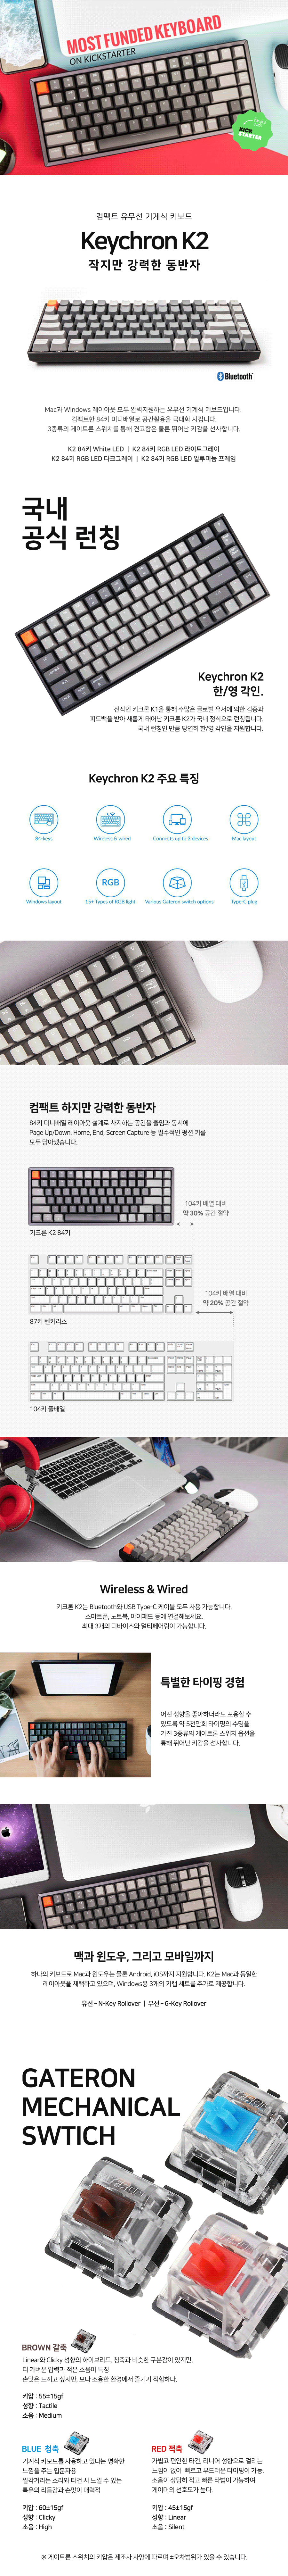 keychron1.png